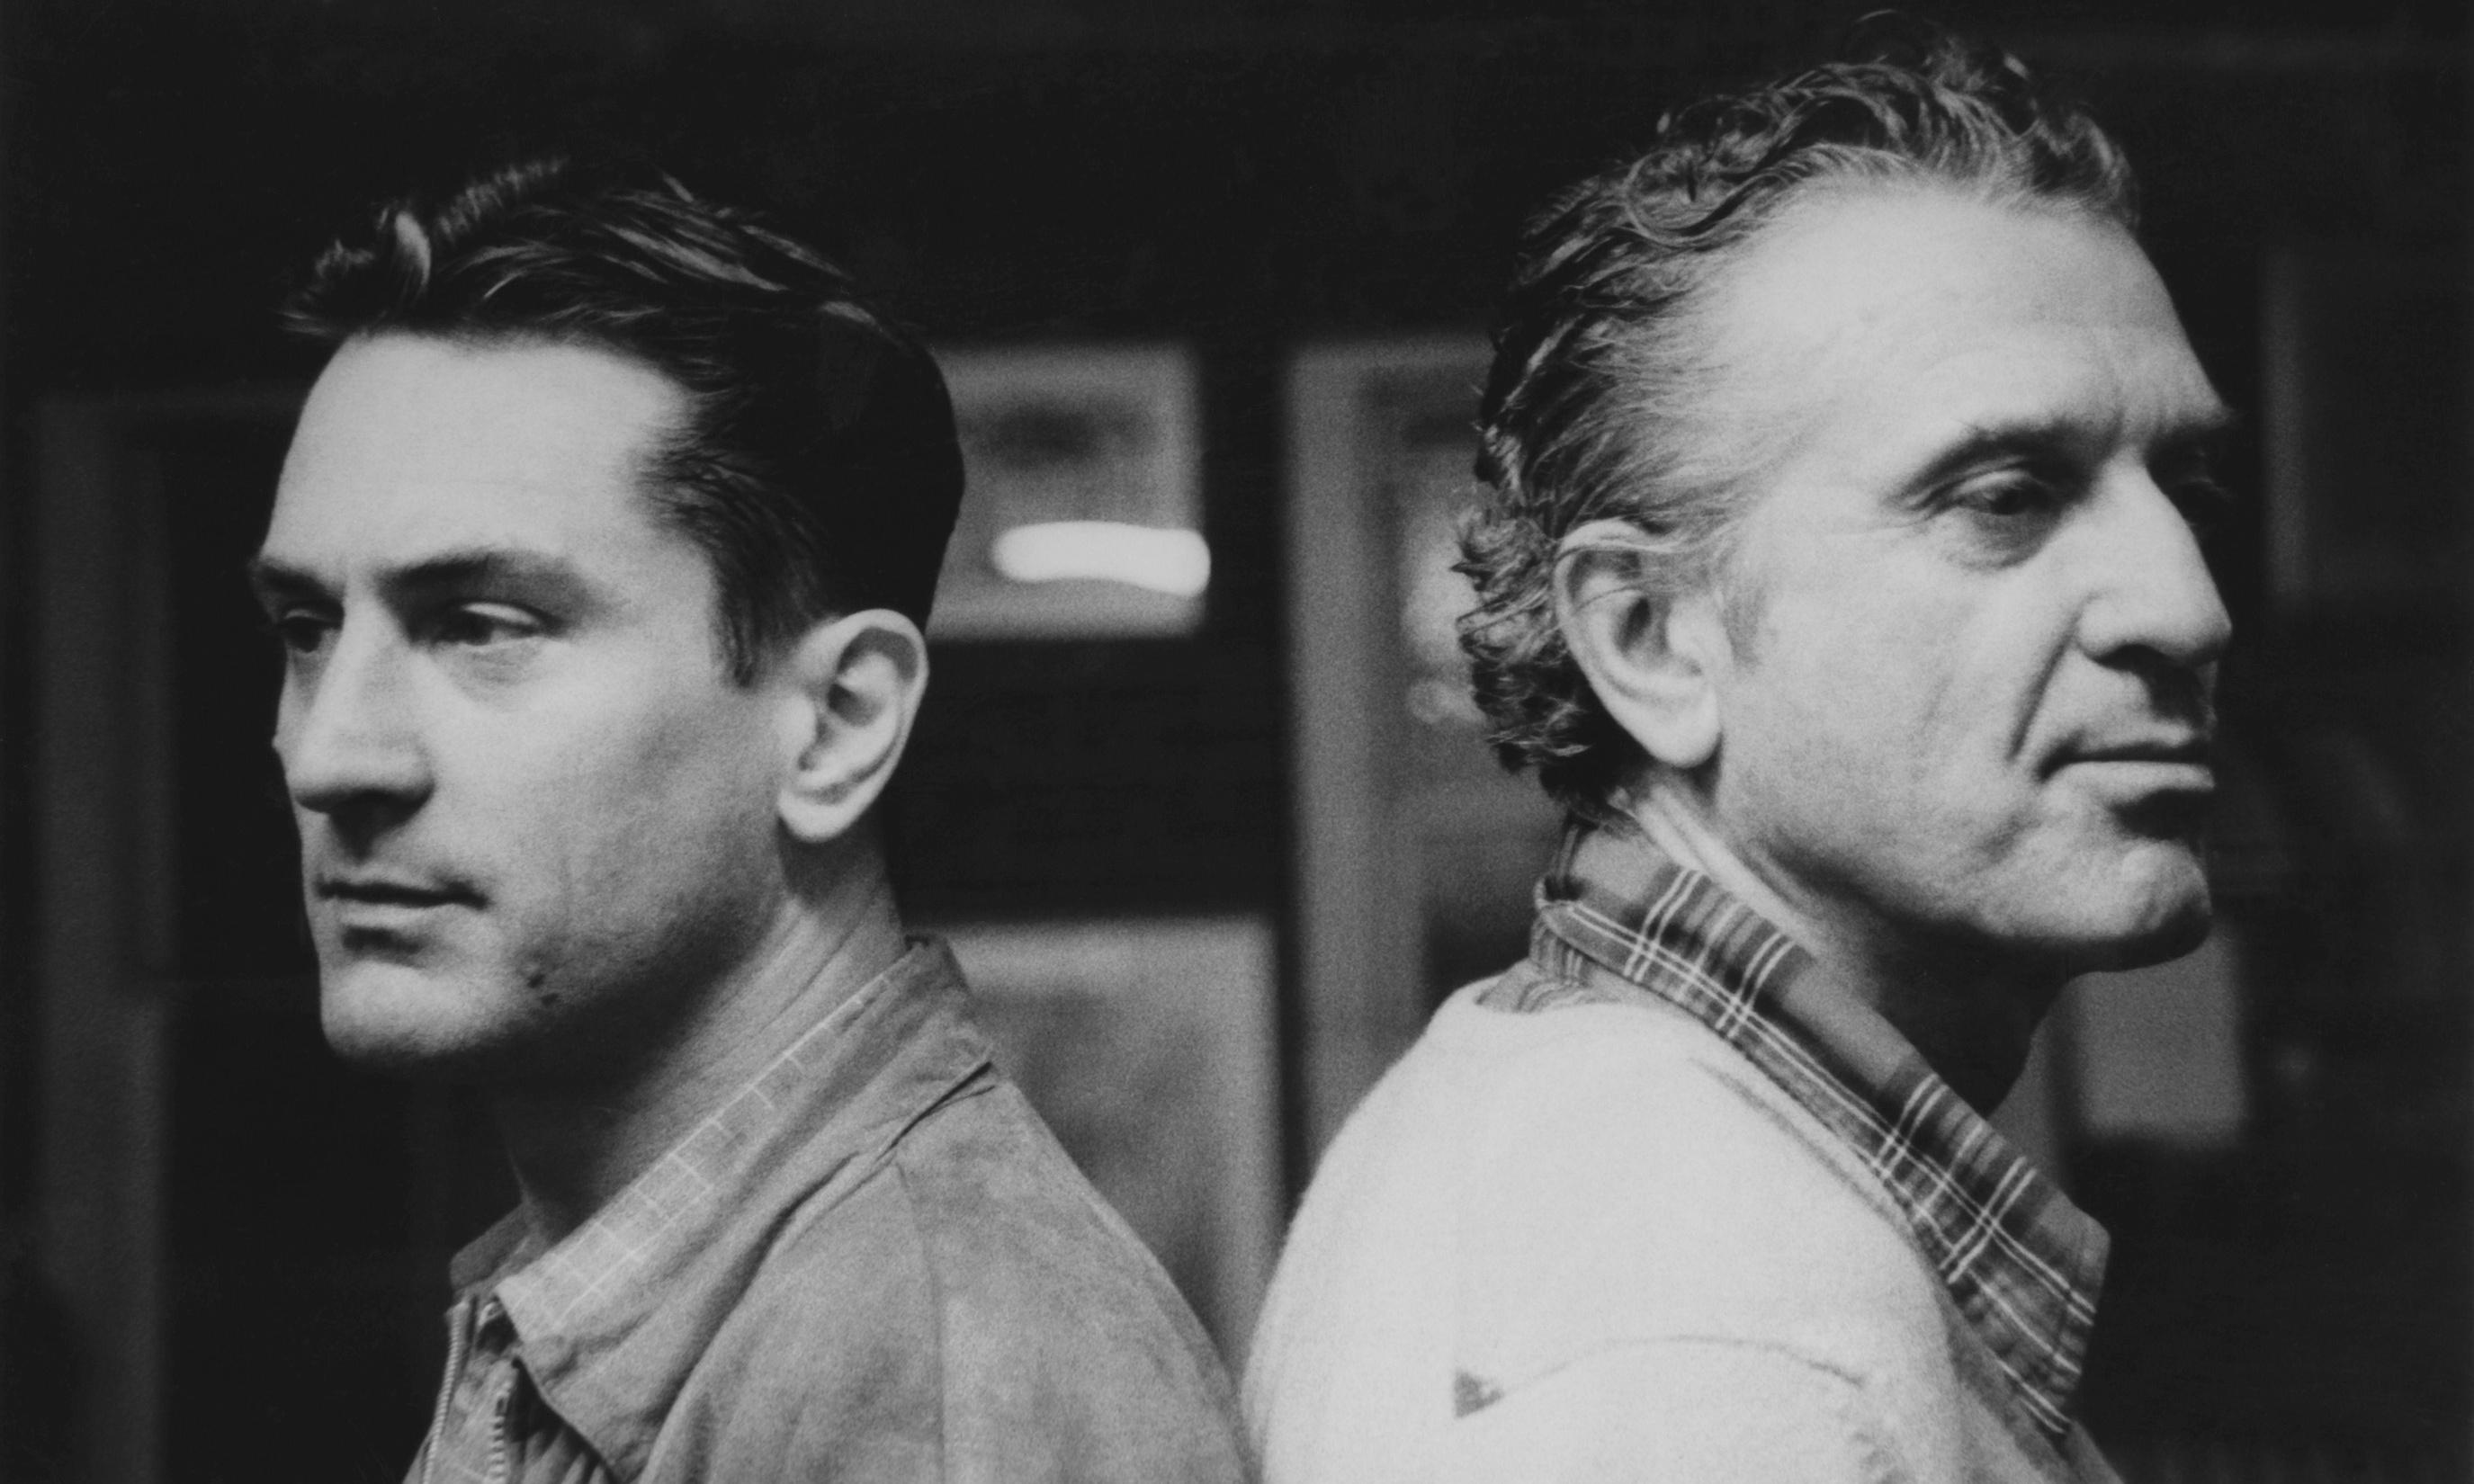 Robert De Niro on his father's journals: 'It was sad for me to read. He had his demons'